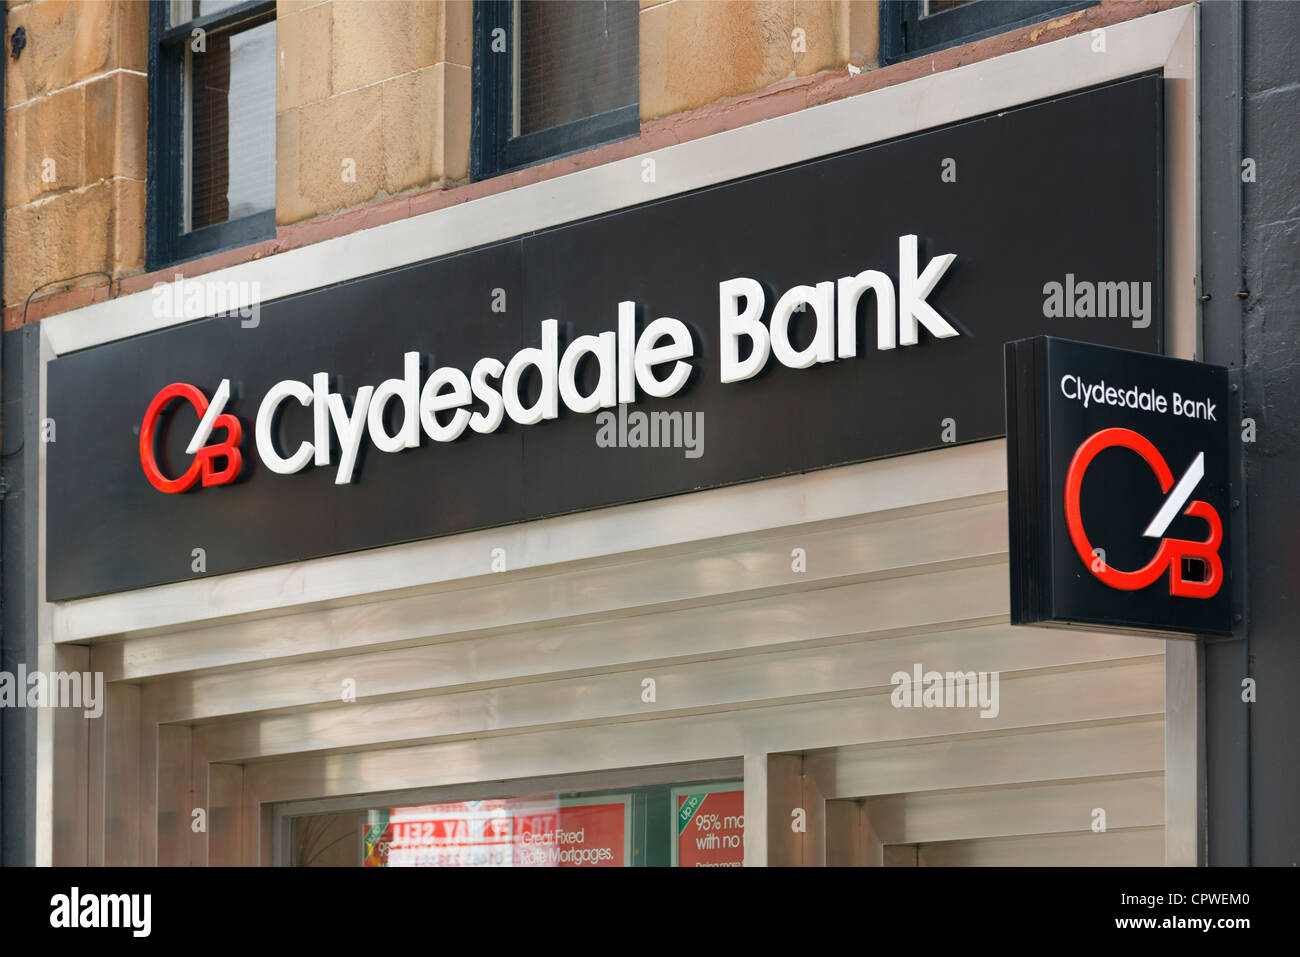 clydesdale-bank-sign-and-symbol-above-th